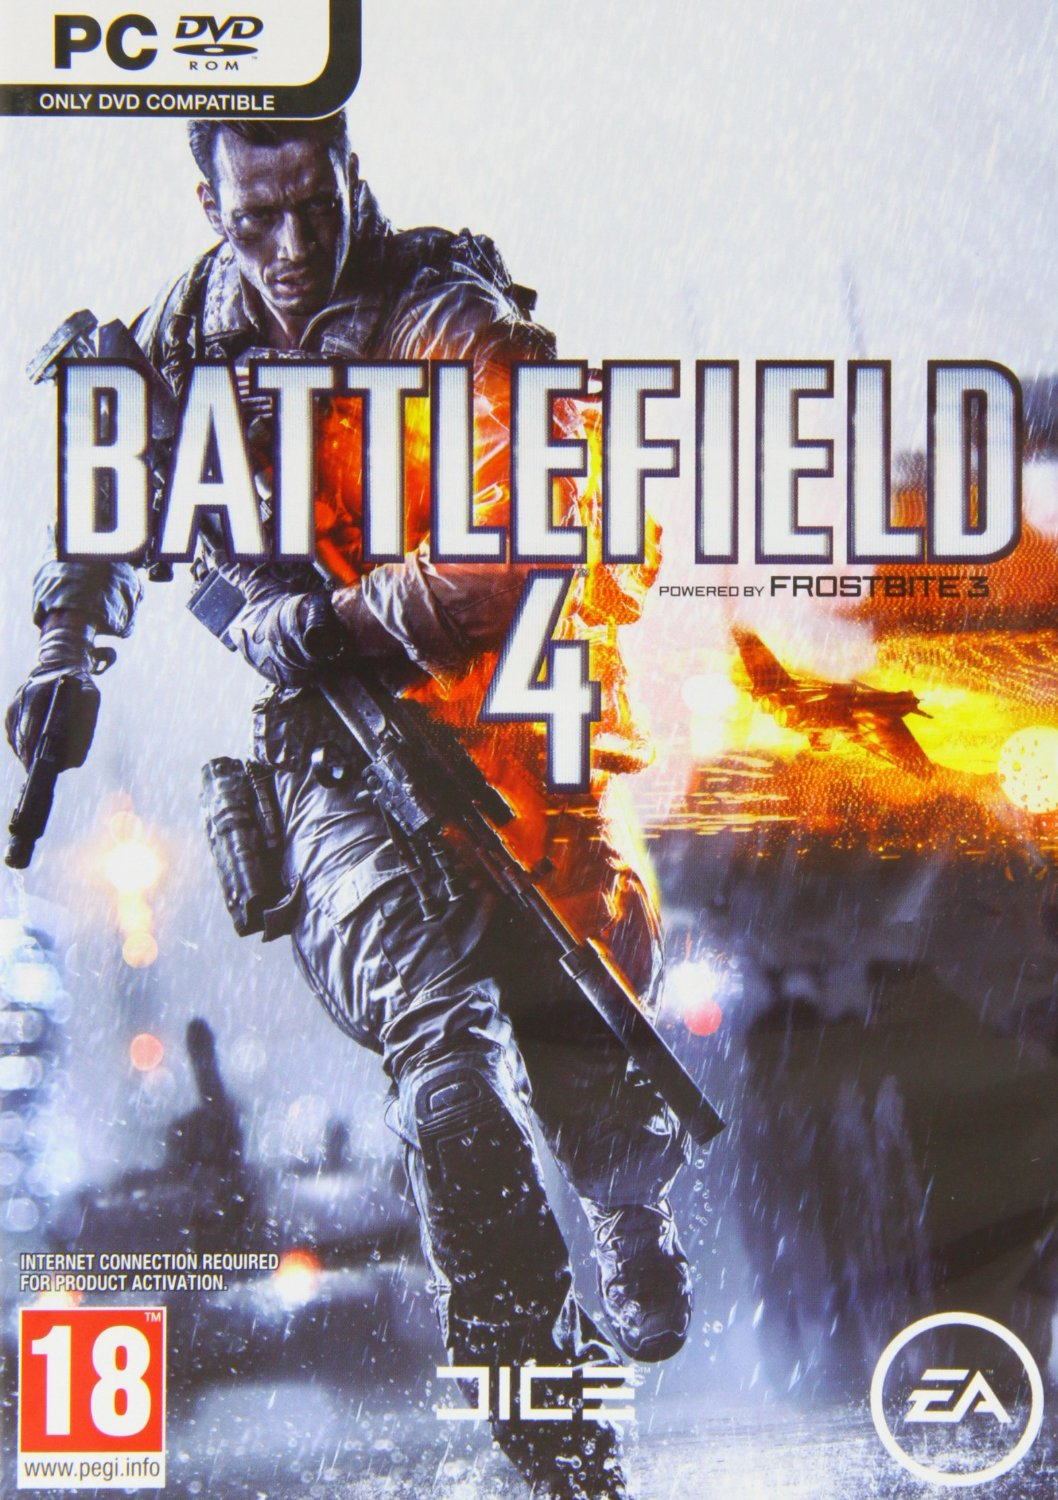 BF4 Battlefield 4 for Windows